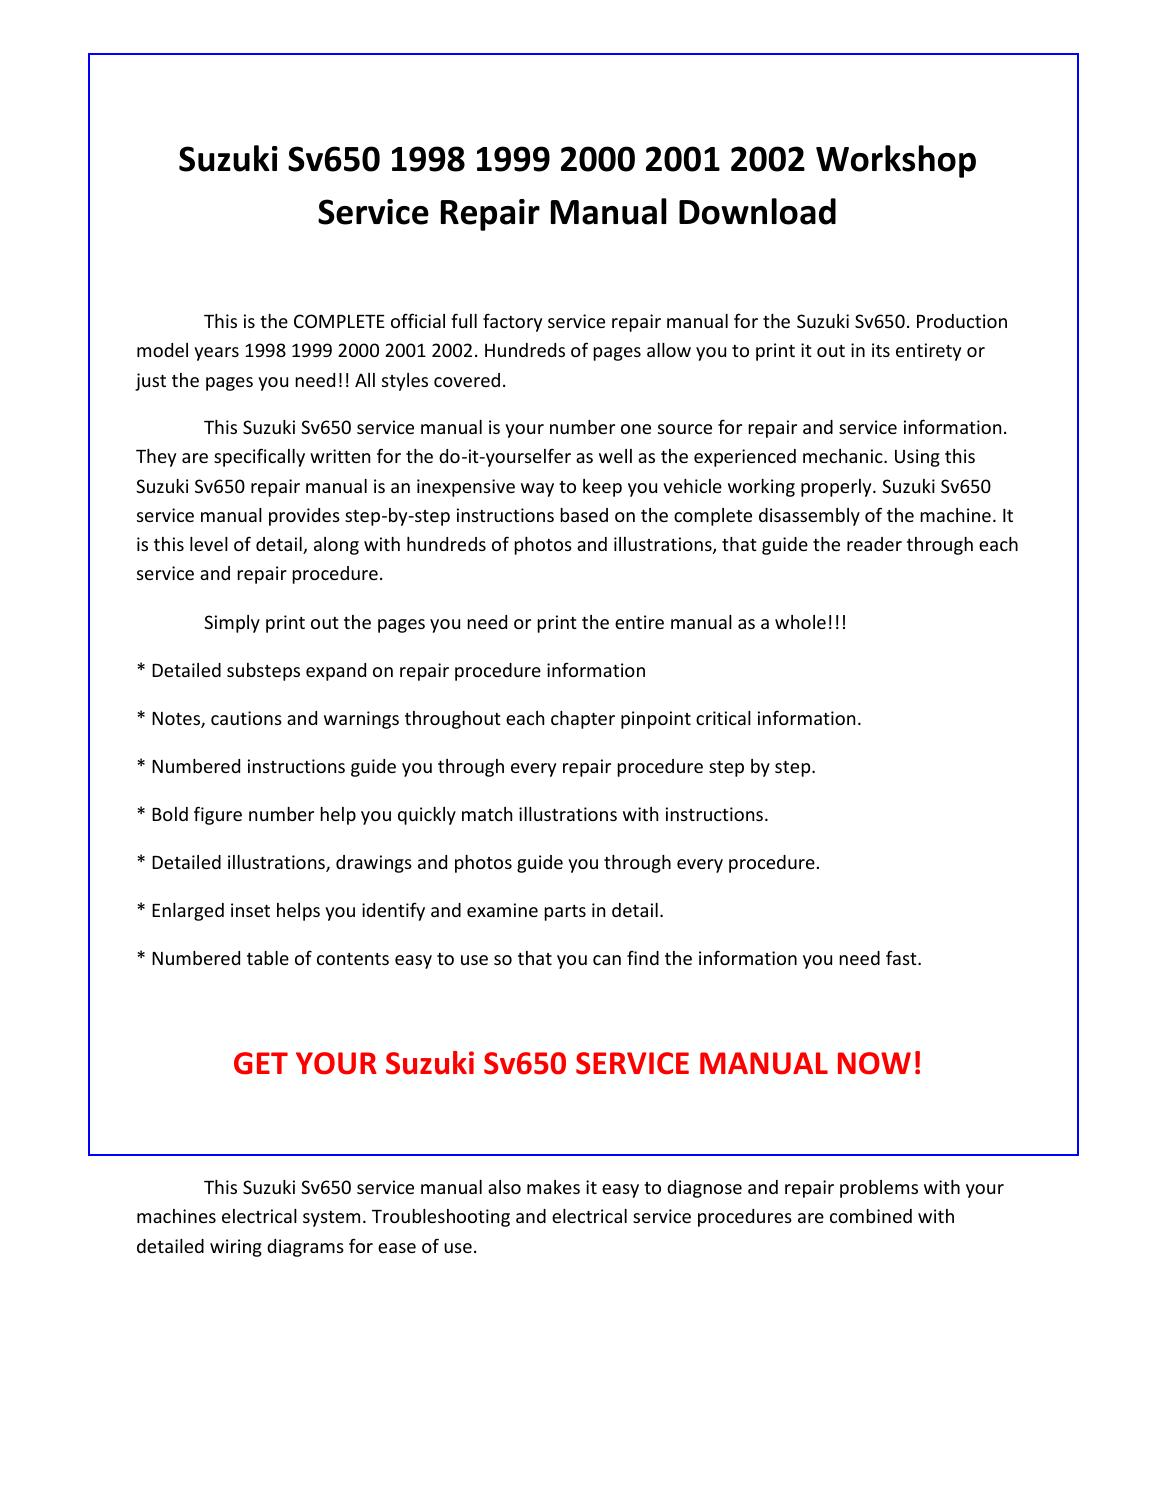 Suzuki sv650 1998 1999 2000 2001 2002 service repair manual pdf download by  sparchita3 - issuu